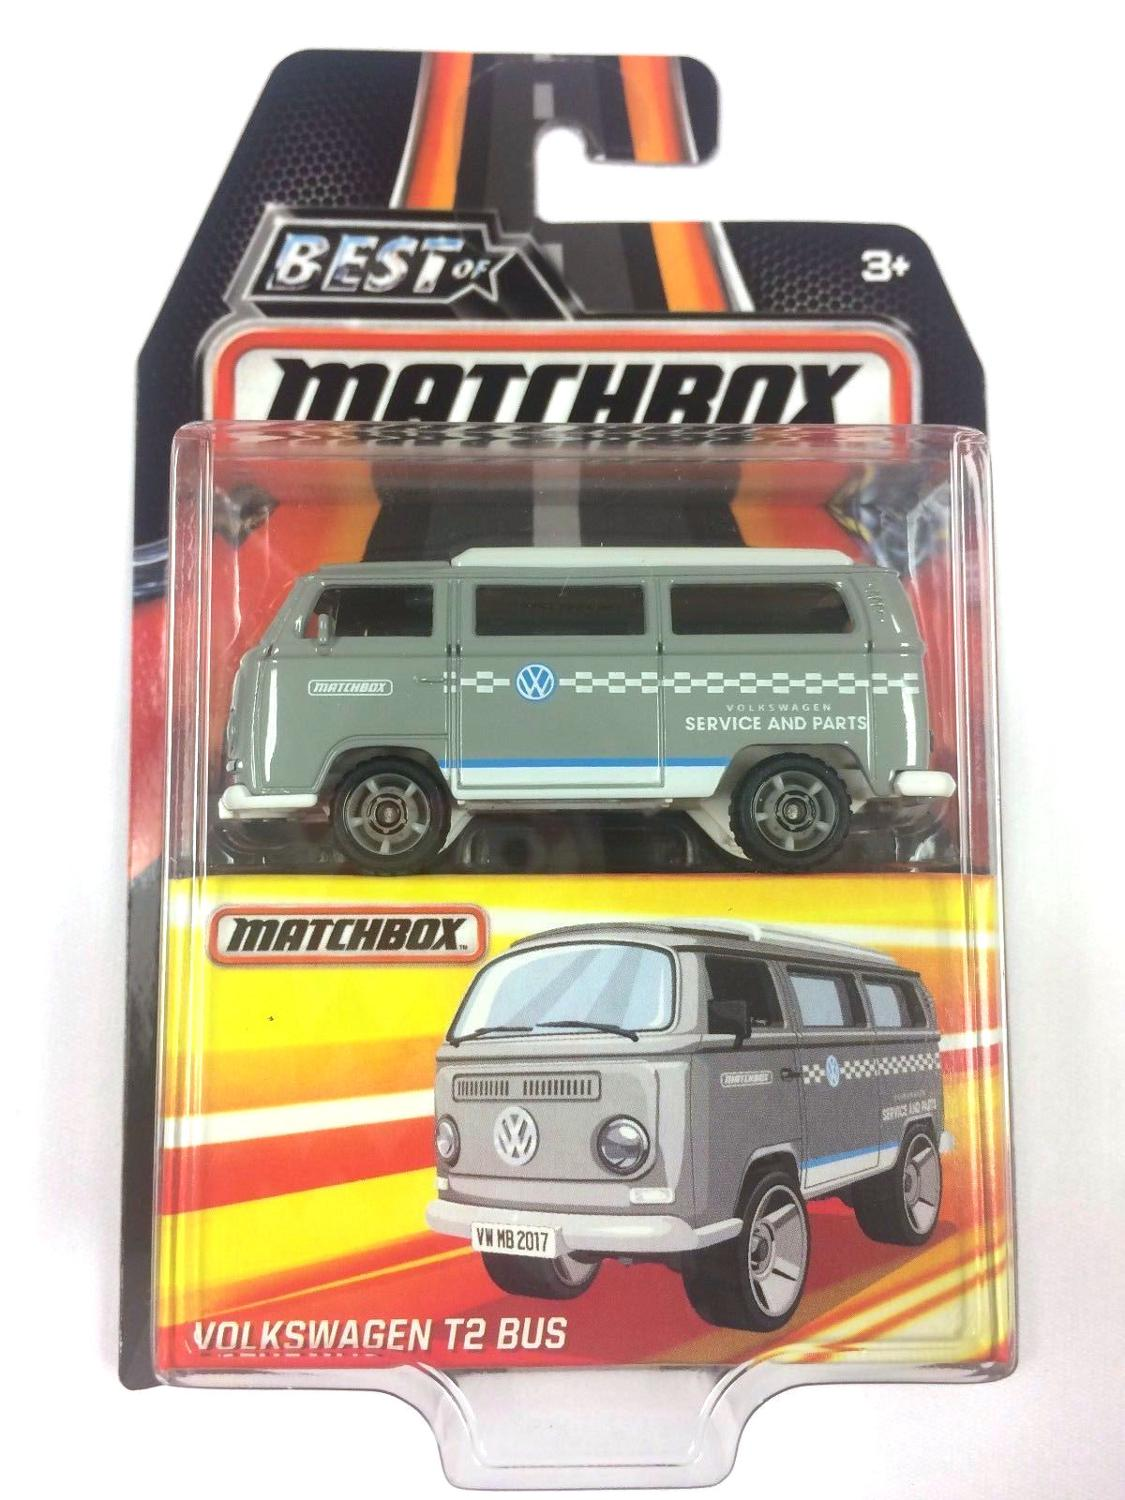 2019 Matchbox Car 1:64 Sports Car VOLKSWAGEN T2 BUS Collector Edition BEST OF Metal Diecast Model Car Kids Toys Gift